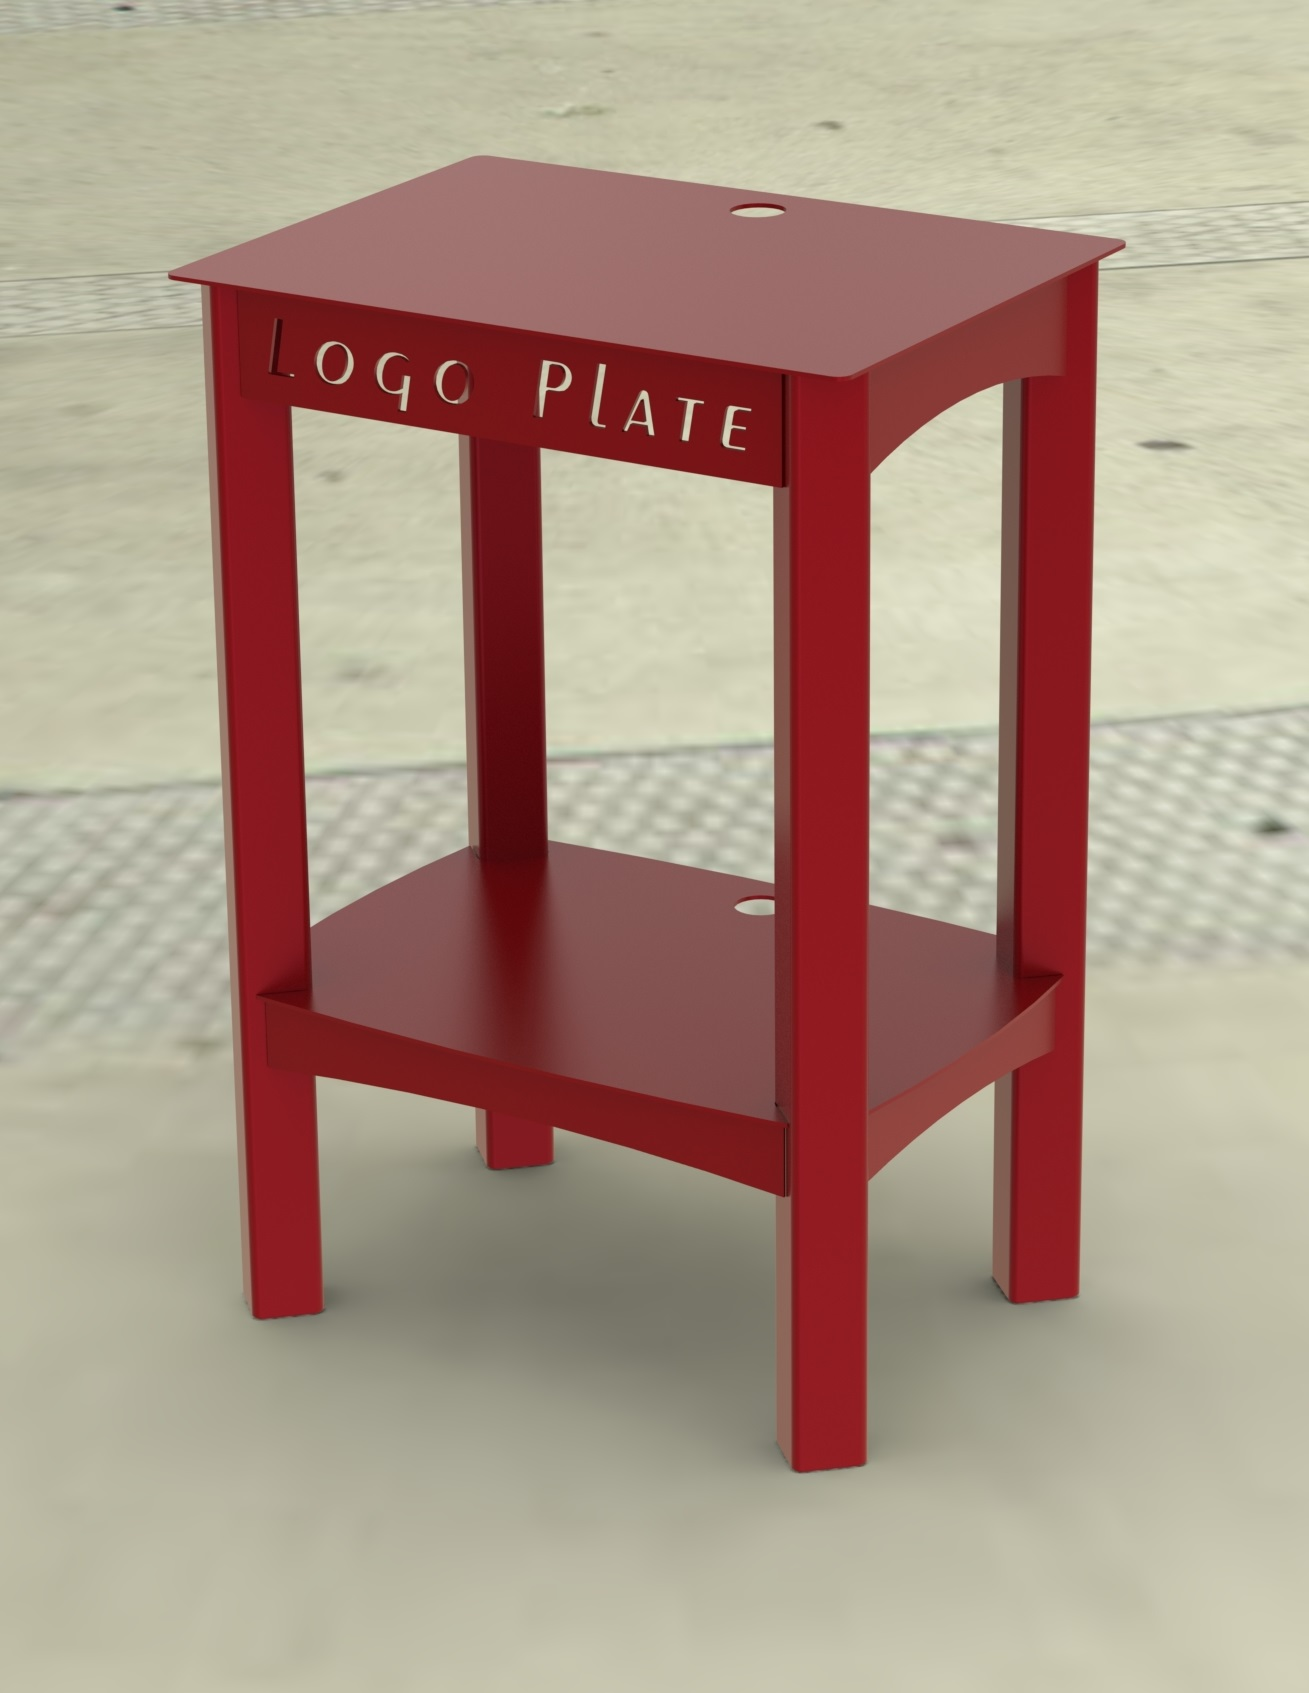 Popcorn Maker Stand With Logo Plate Designer Rants For Machine Wiring Diagrams